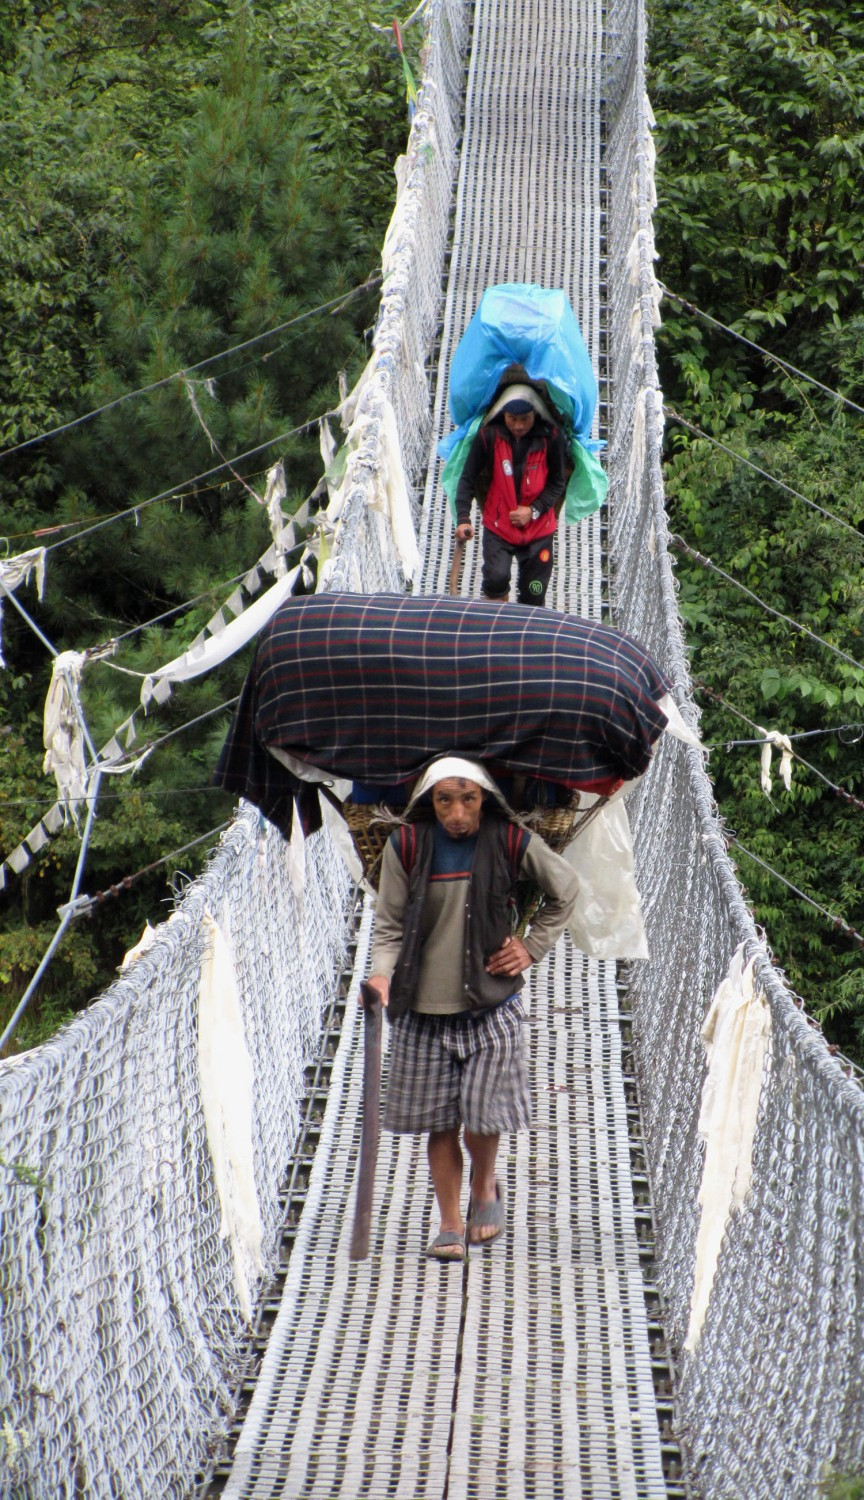 Nepal-Everest-Region-Trek-Day-01-Porters-Bridge-Crossing